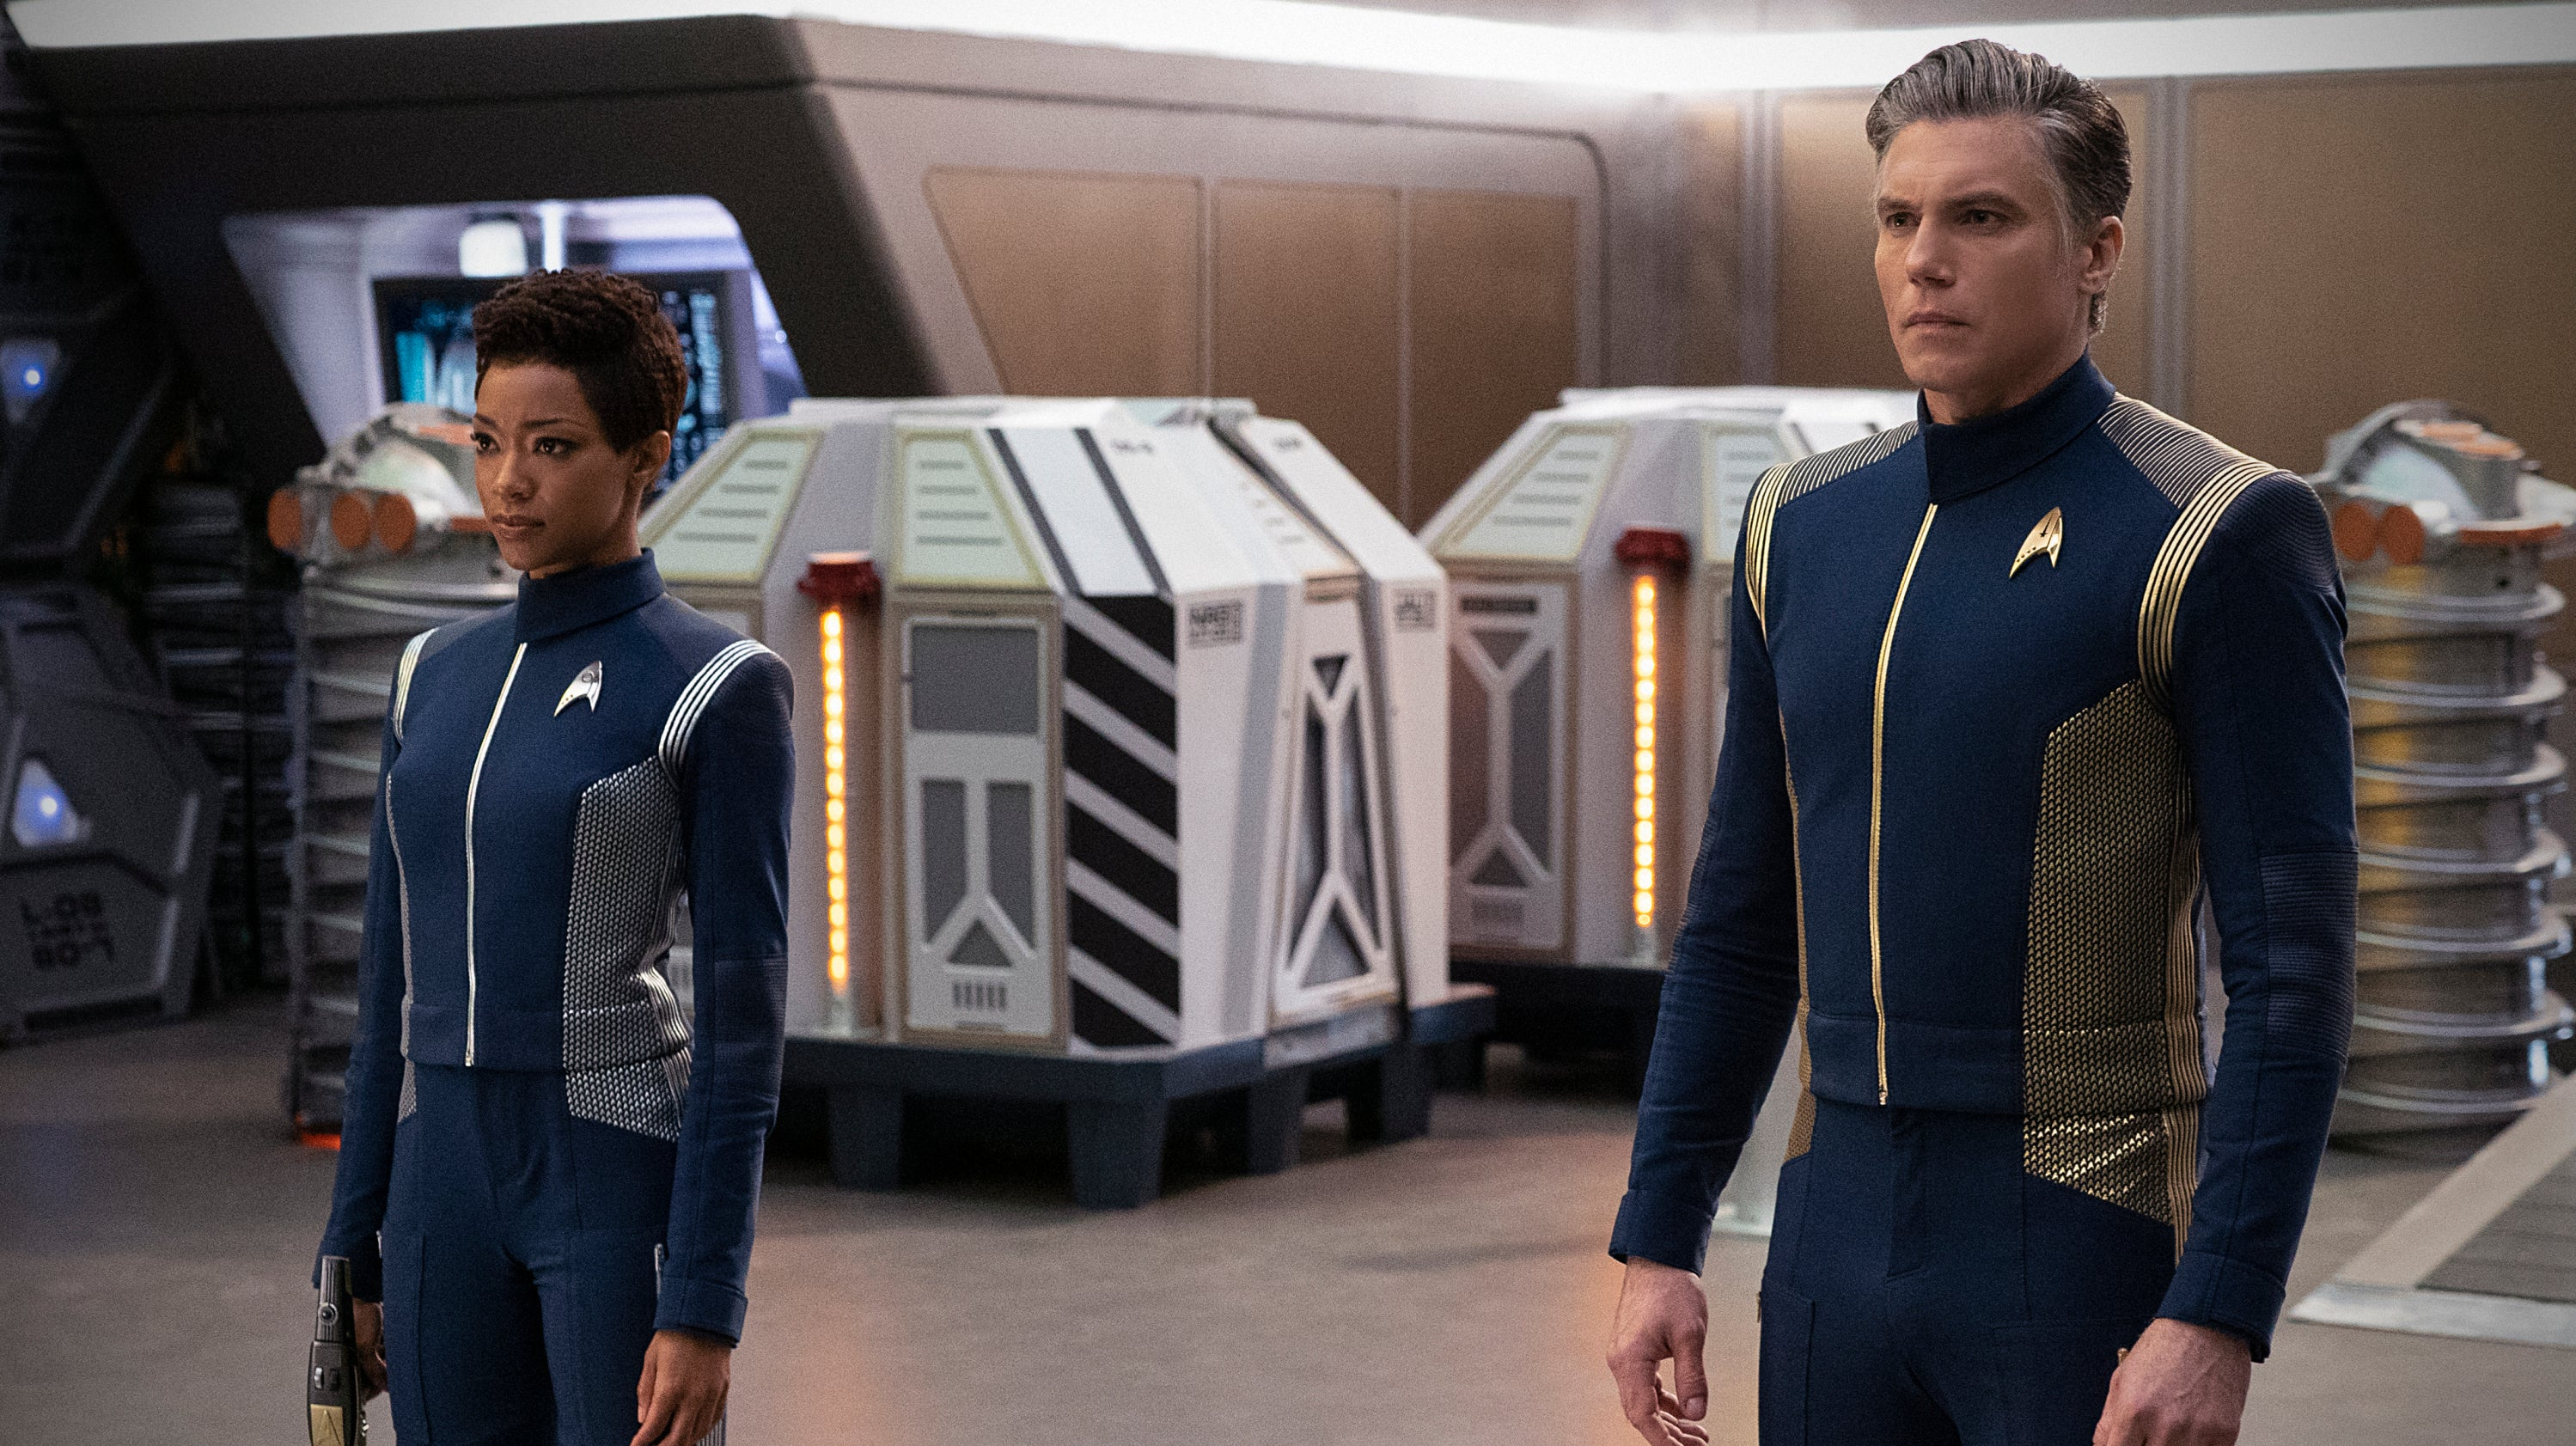 Star Trek: Discovery's Stars Reveal More About This Week's Big Surprise